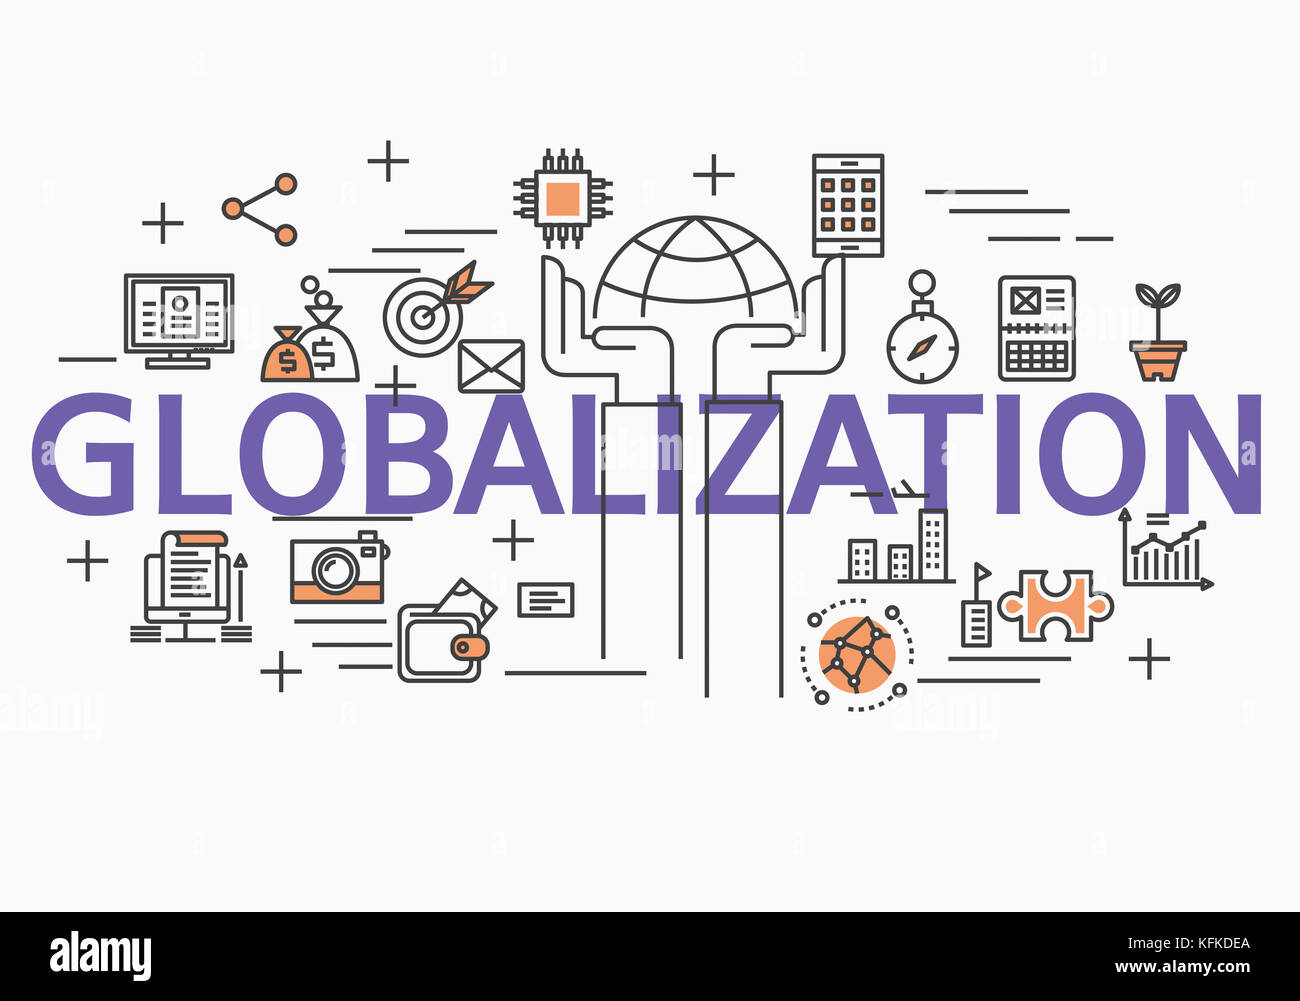 Infographic illustration related to GLOBALIZATION - Stock Image